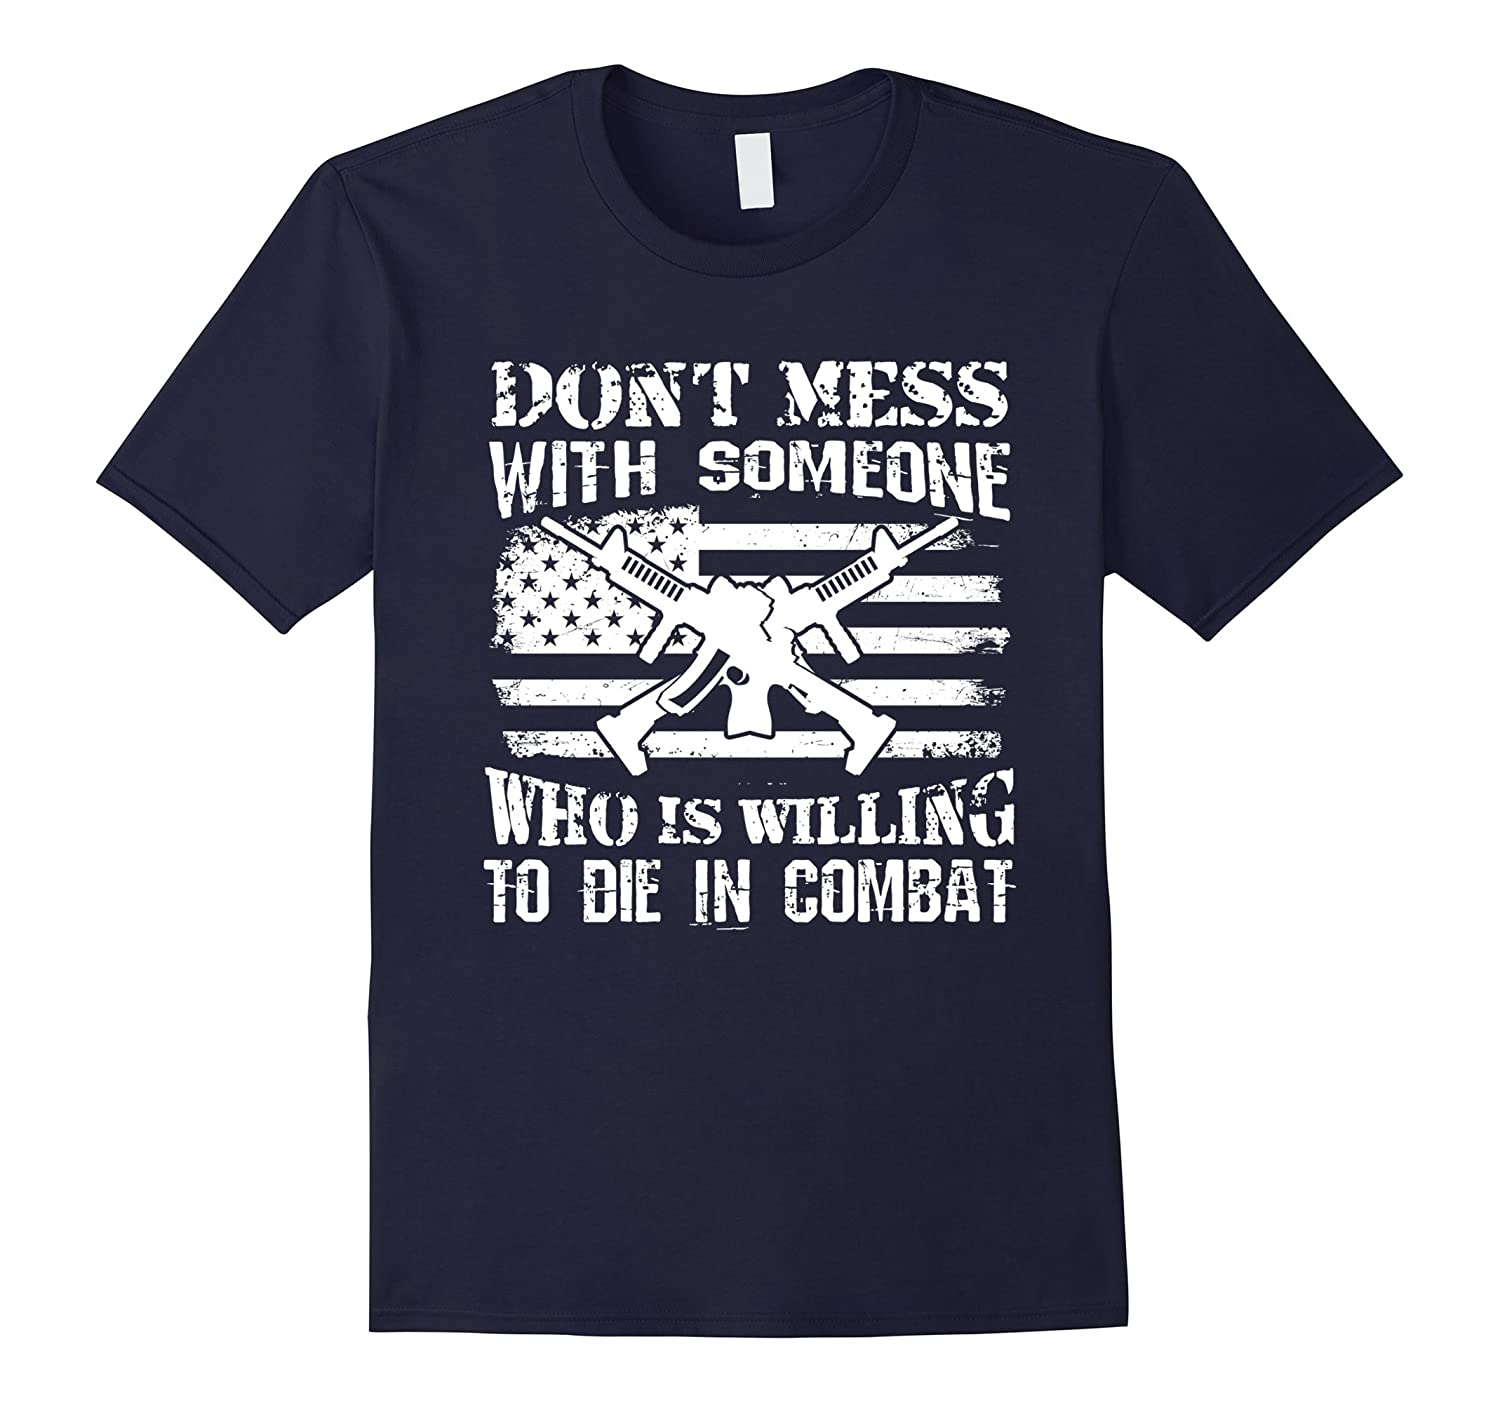 T Shirt For Combat Veterans And Soldiers – Willing To Die